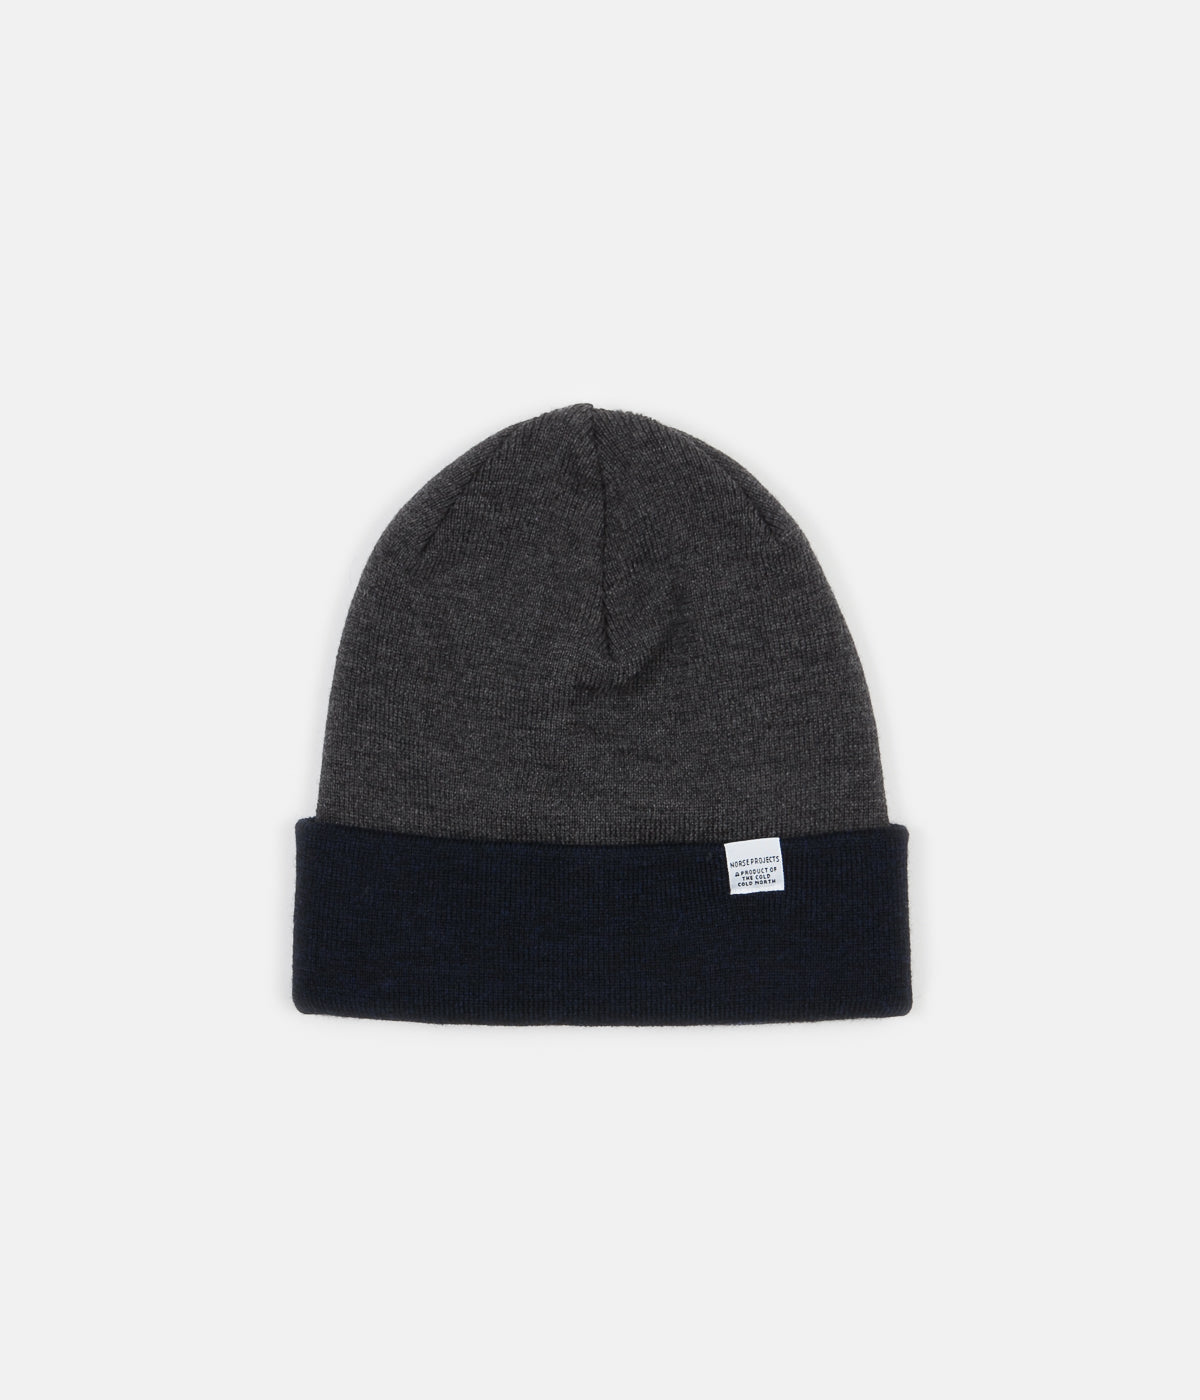 Norse Projects Colour Block Beanie - Dark Navy  38b89063a63